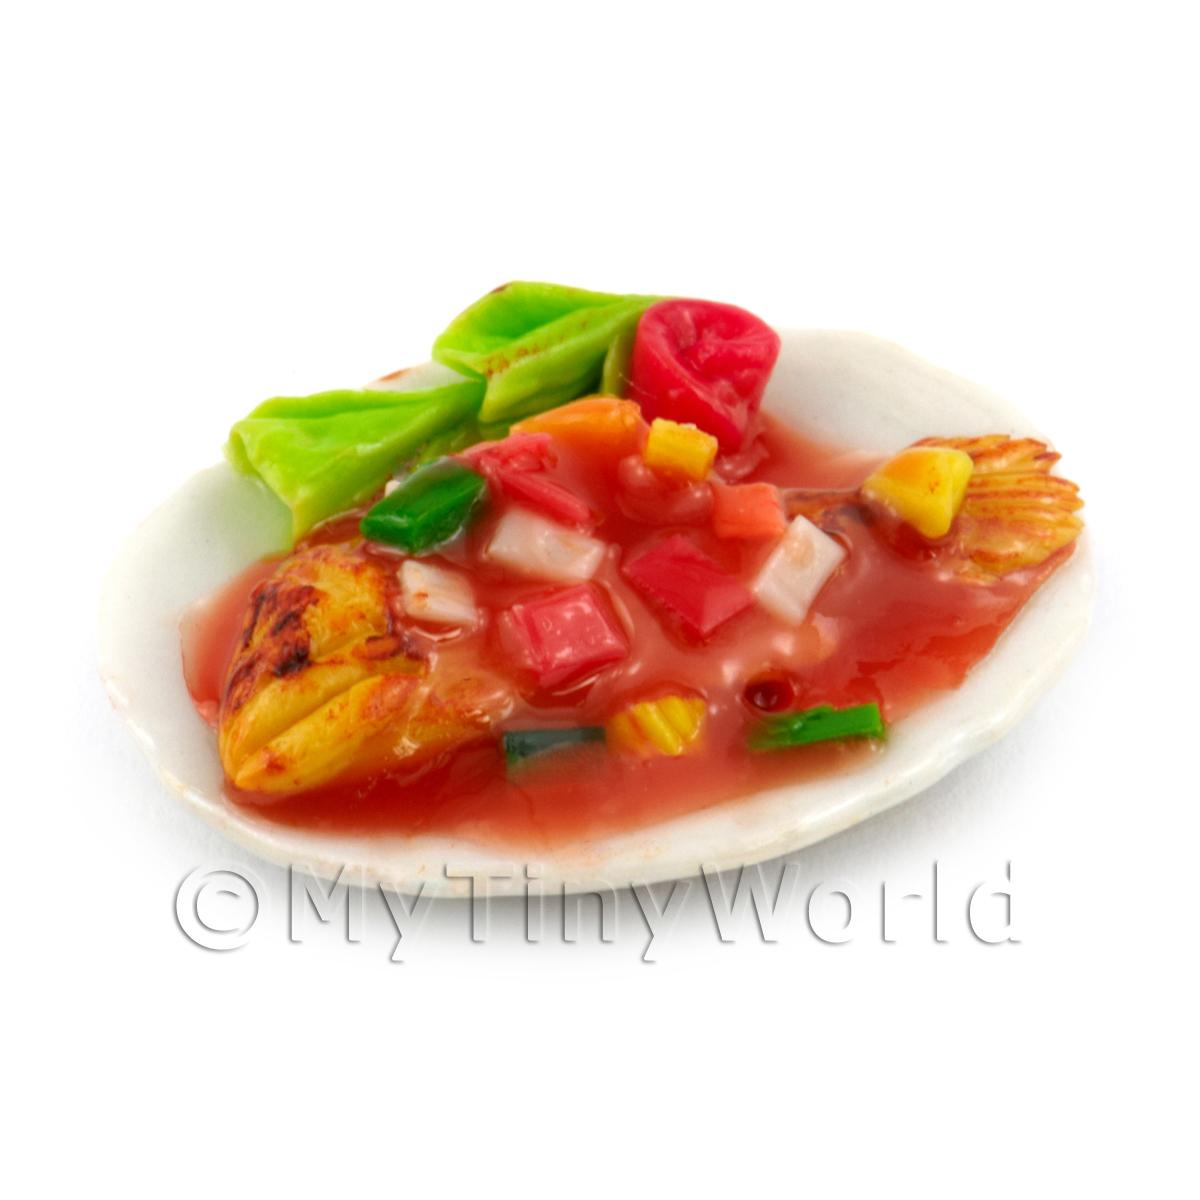 Dolls House Miniature Whole Cooked Fish With Sweet and Sour Sauce